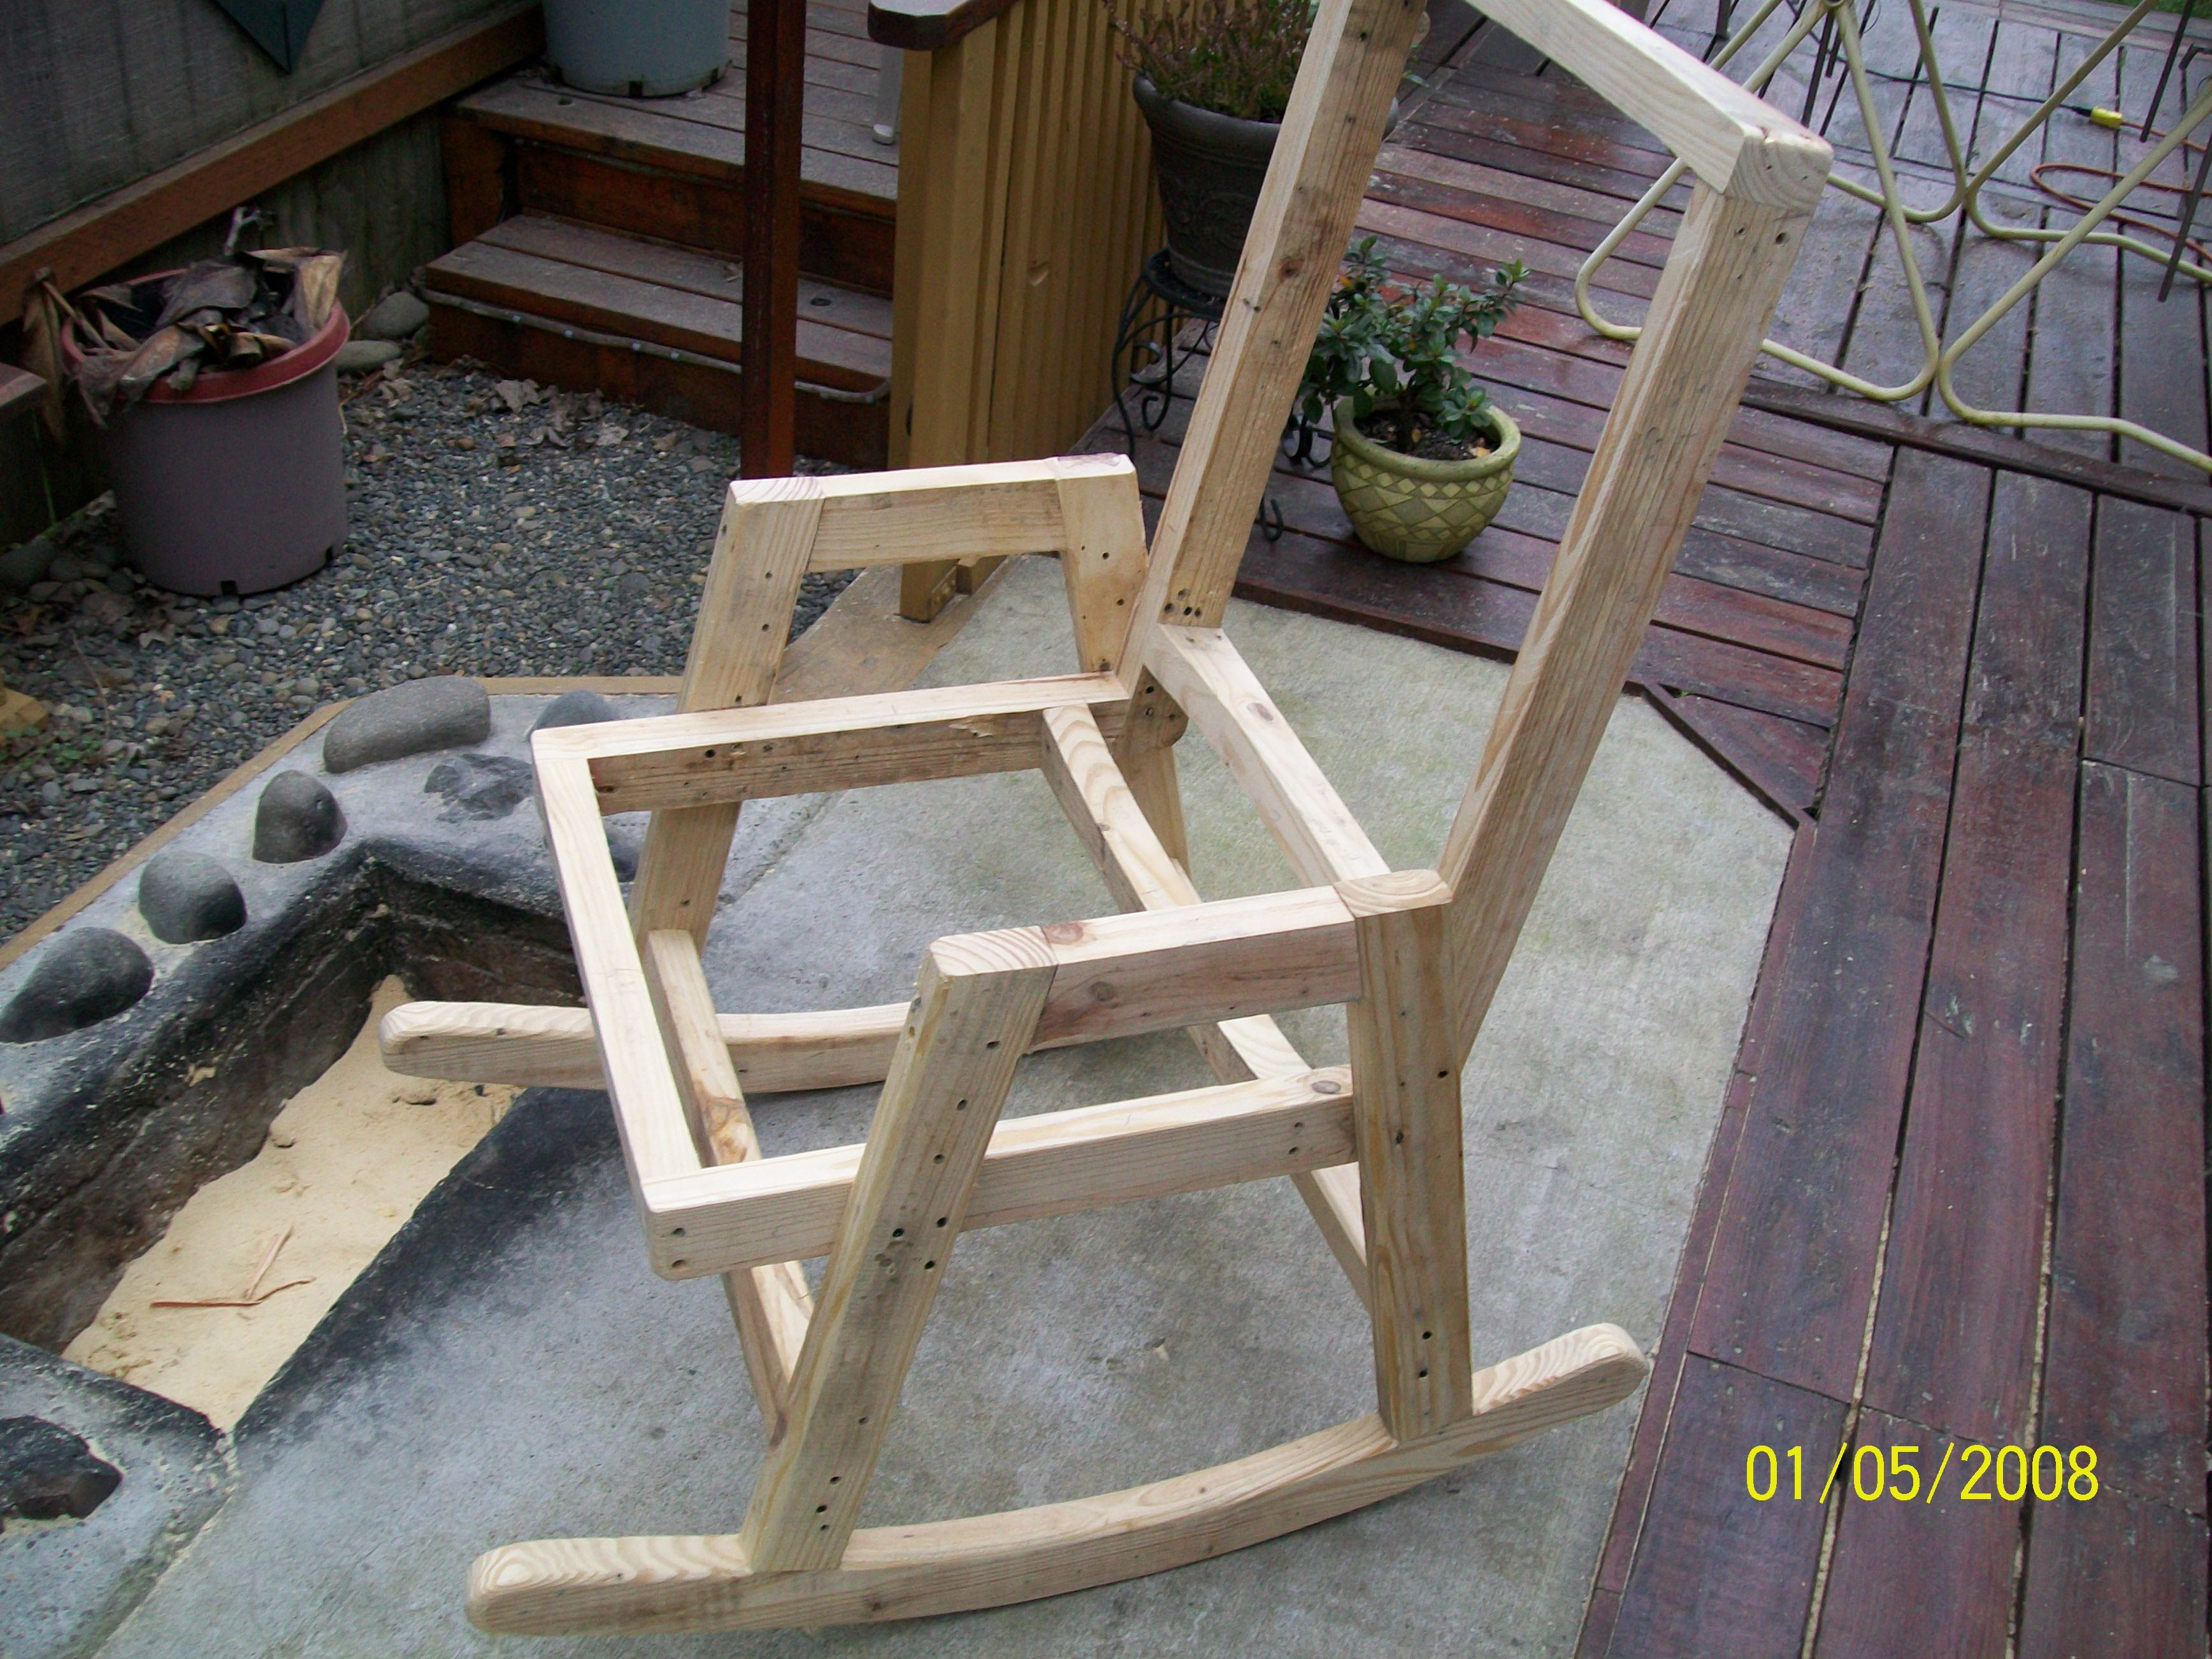 diy pallet rocking chair plans covers for ikea nils pin by kelly byler on rockers pinterest